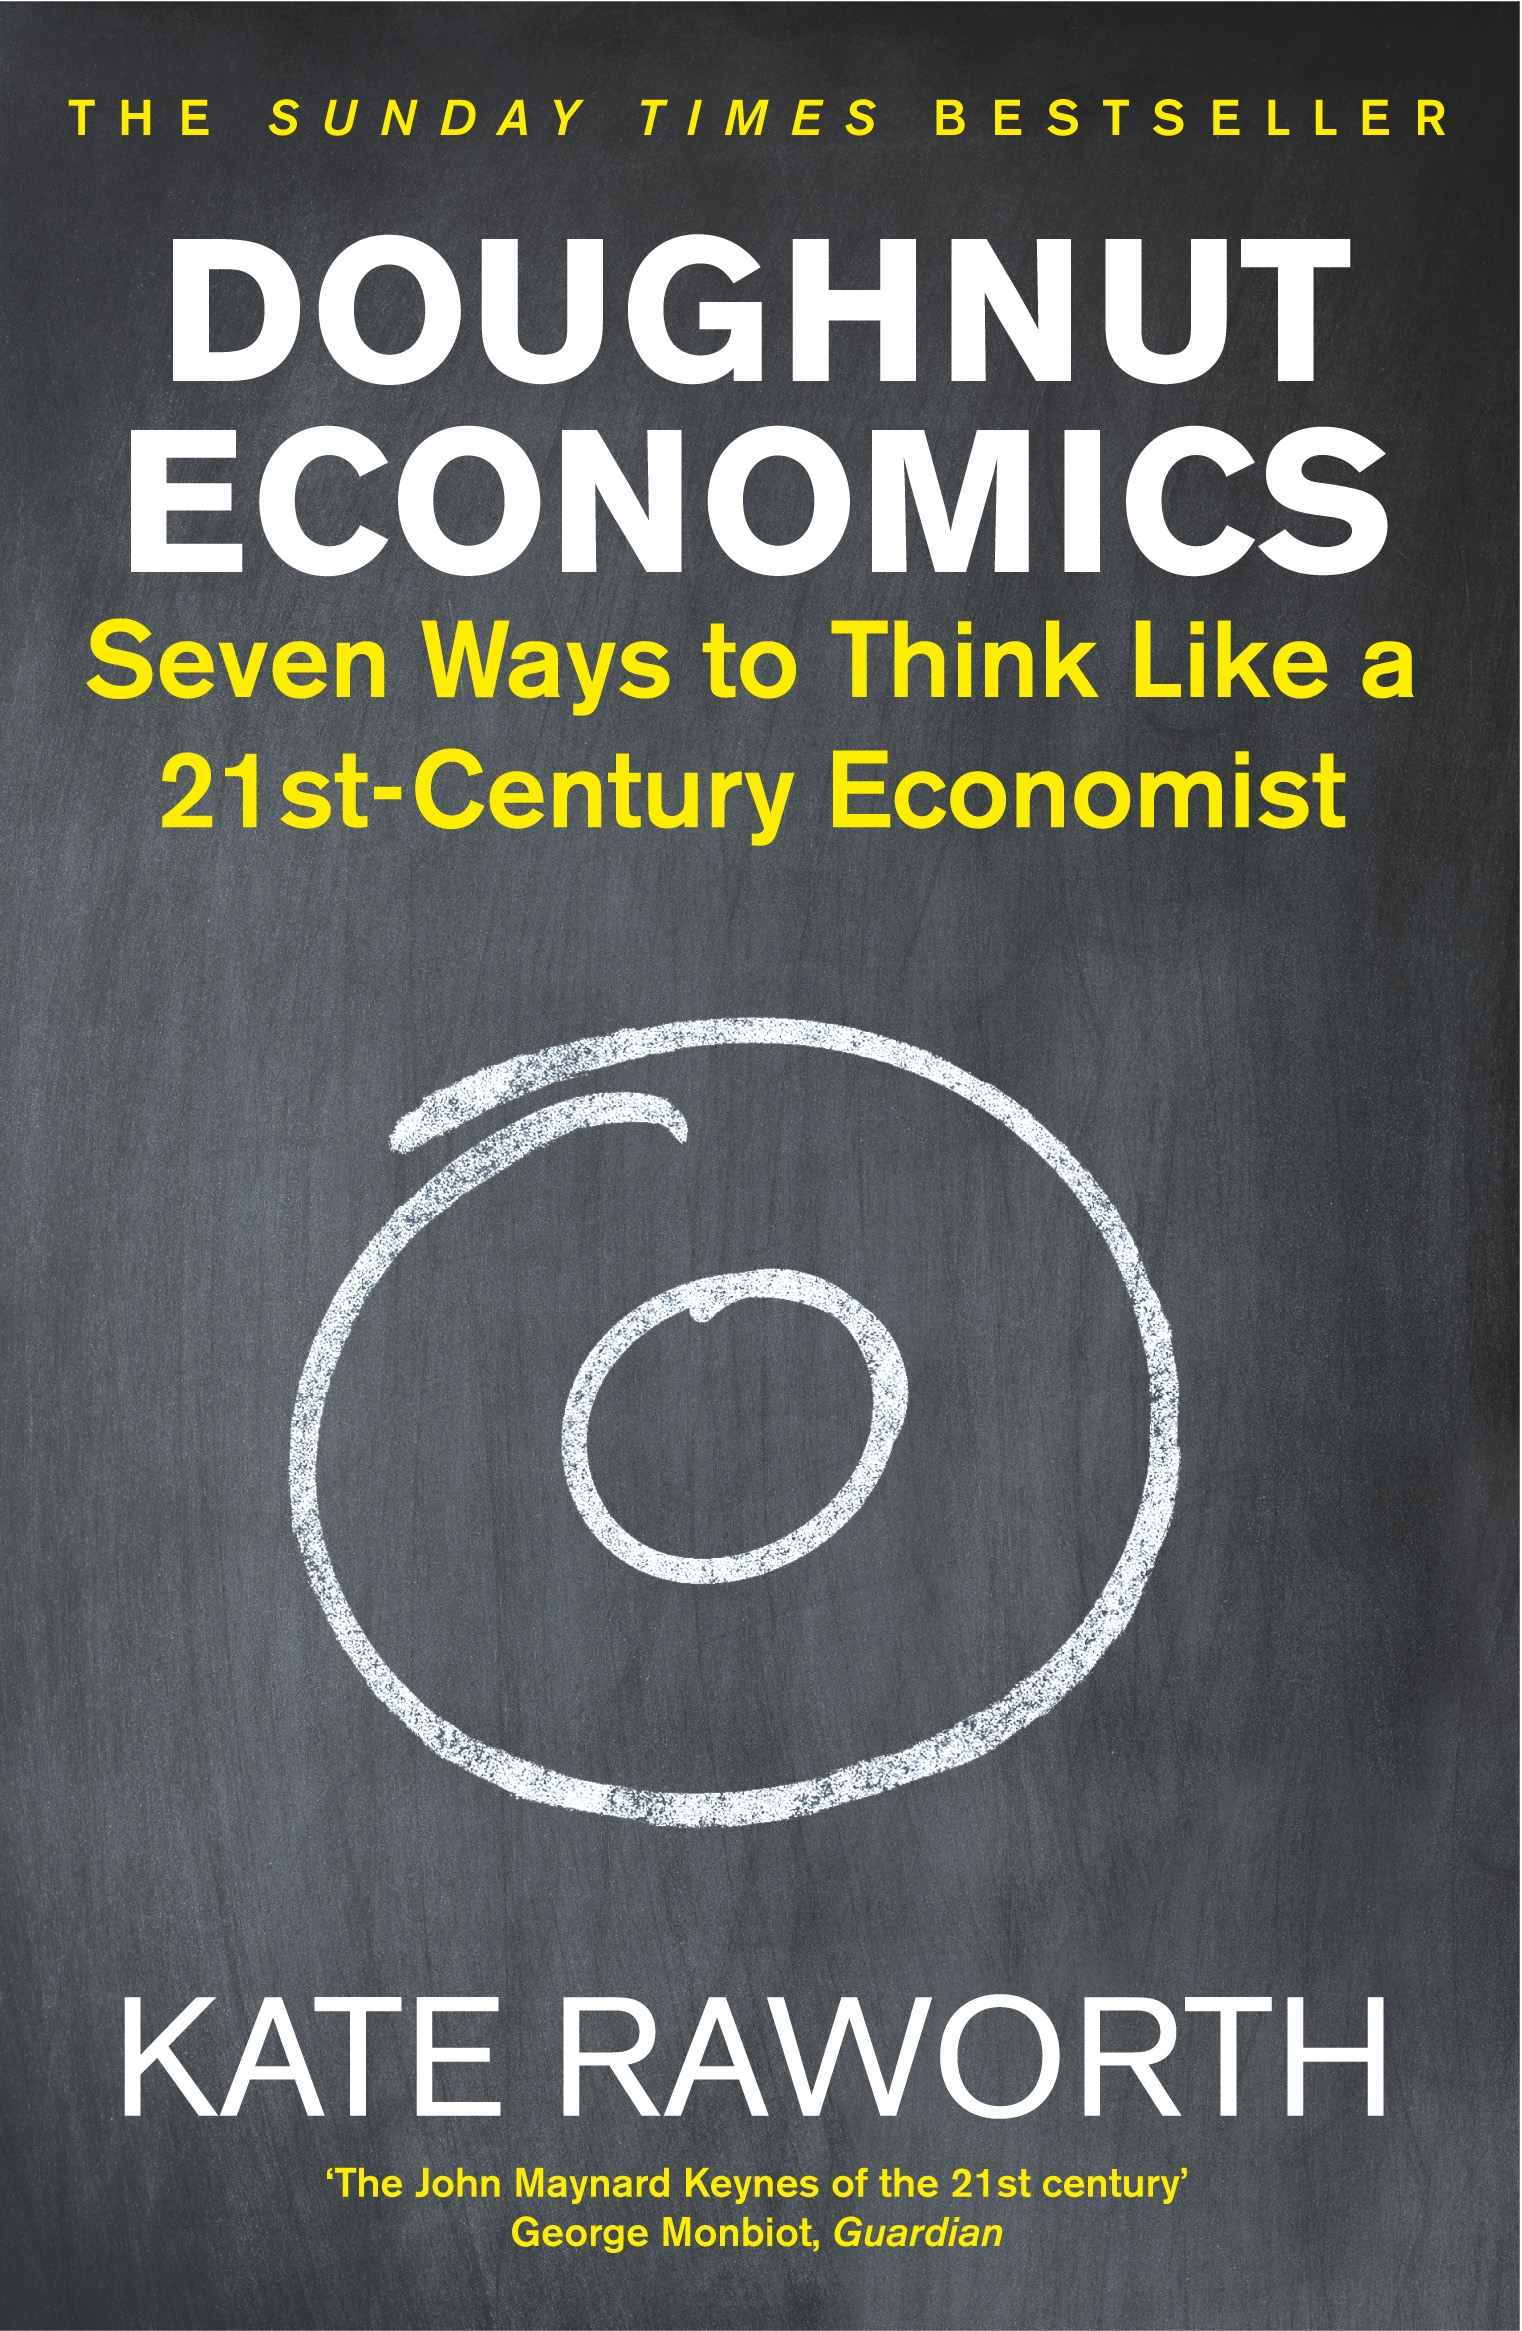 Doughnut Economics: Seven Ways to Think Like a 21st-Century Economist